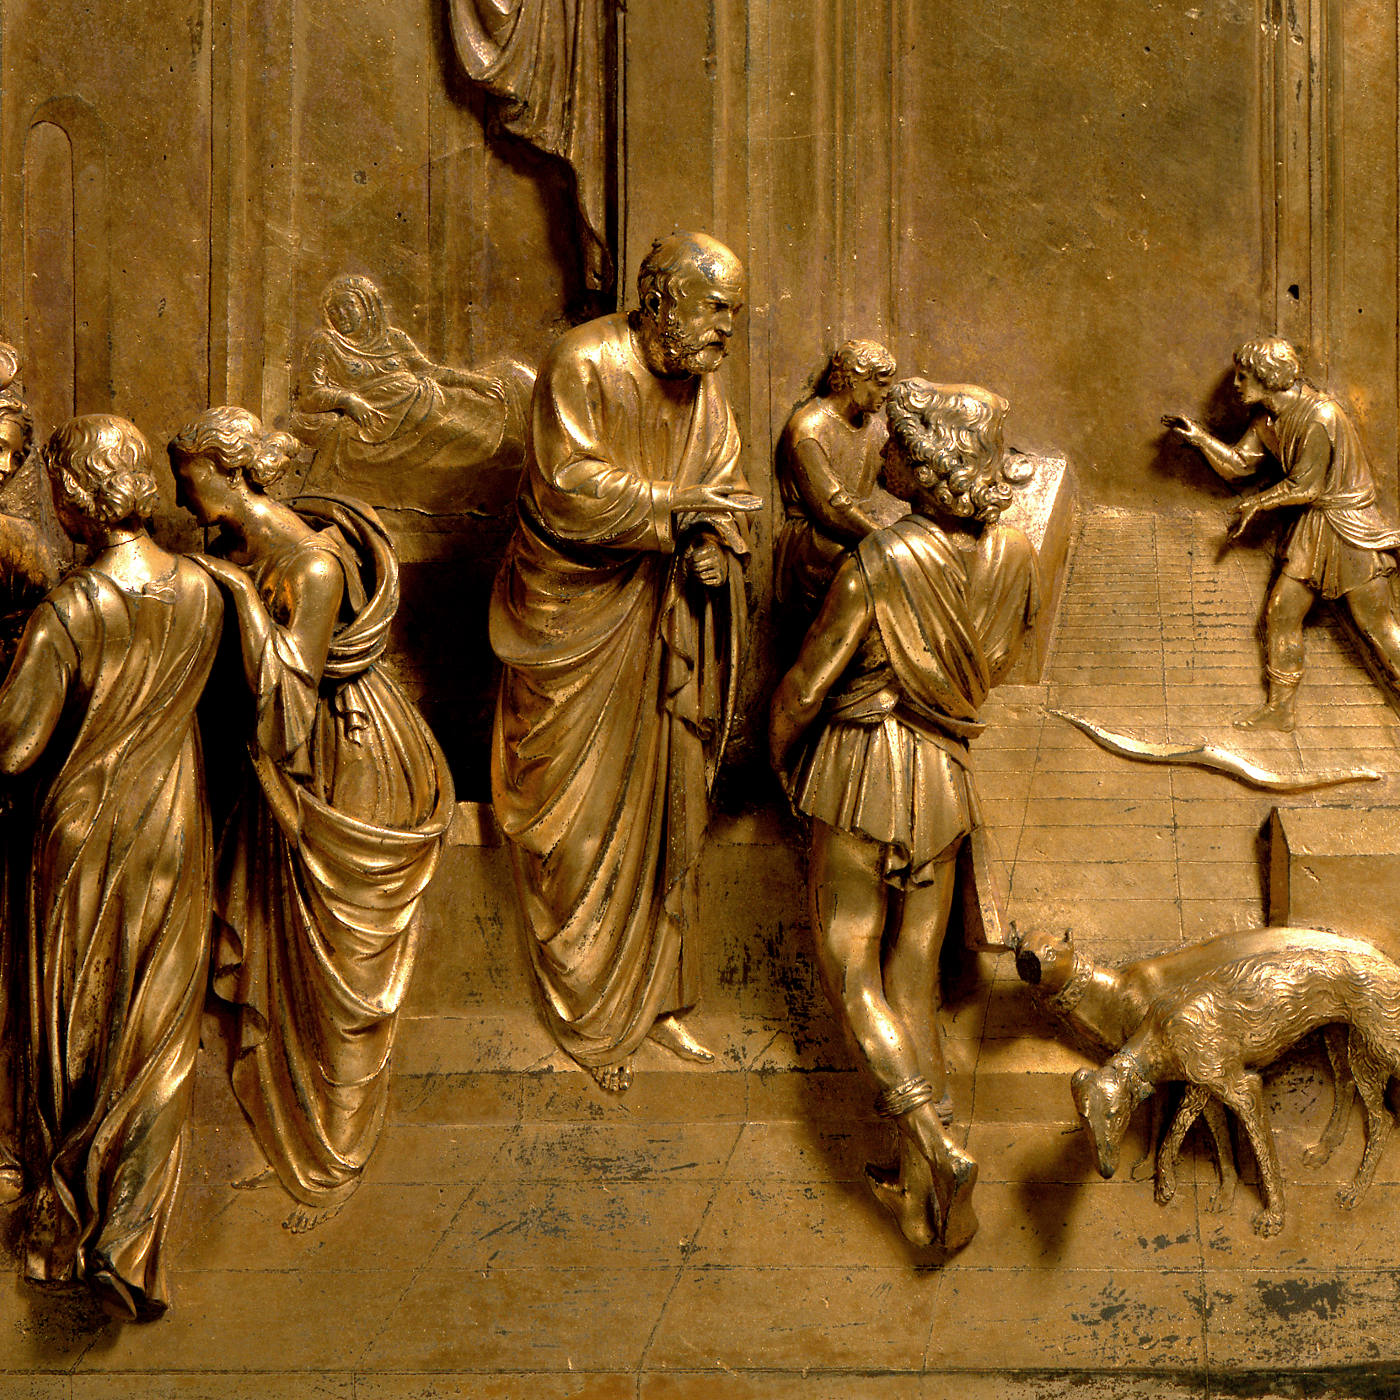 Episode 39 - Lorenzo Ghiberti and the Gates of Paradise